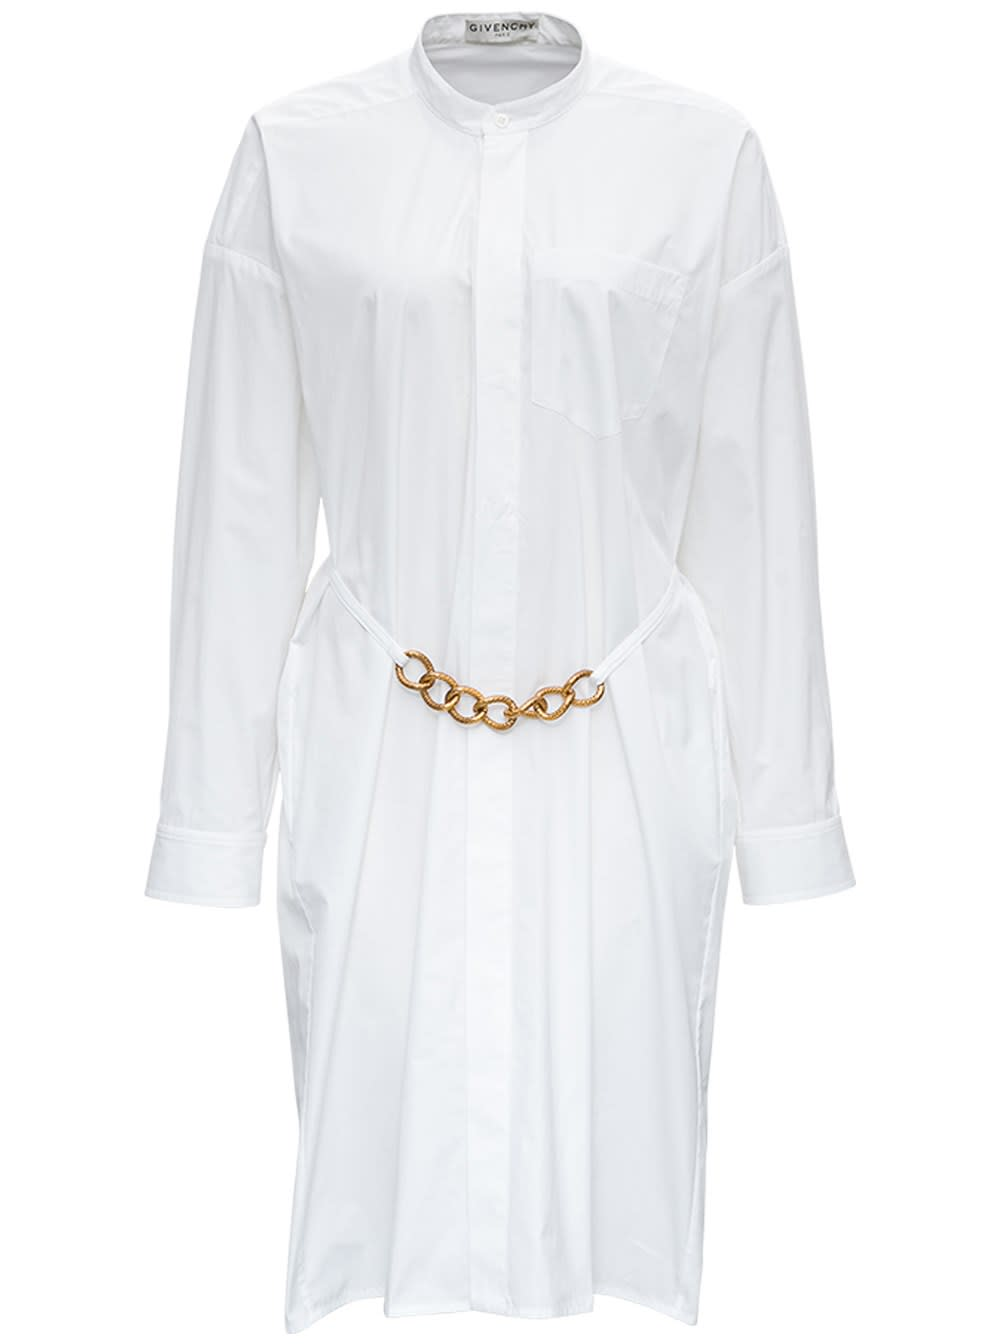 Givenchy White Cotton Dress With Chain Belt Detail